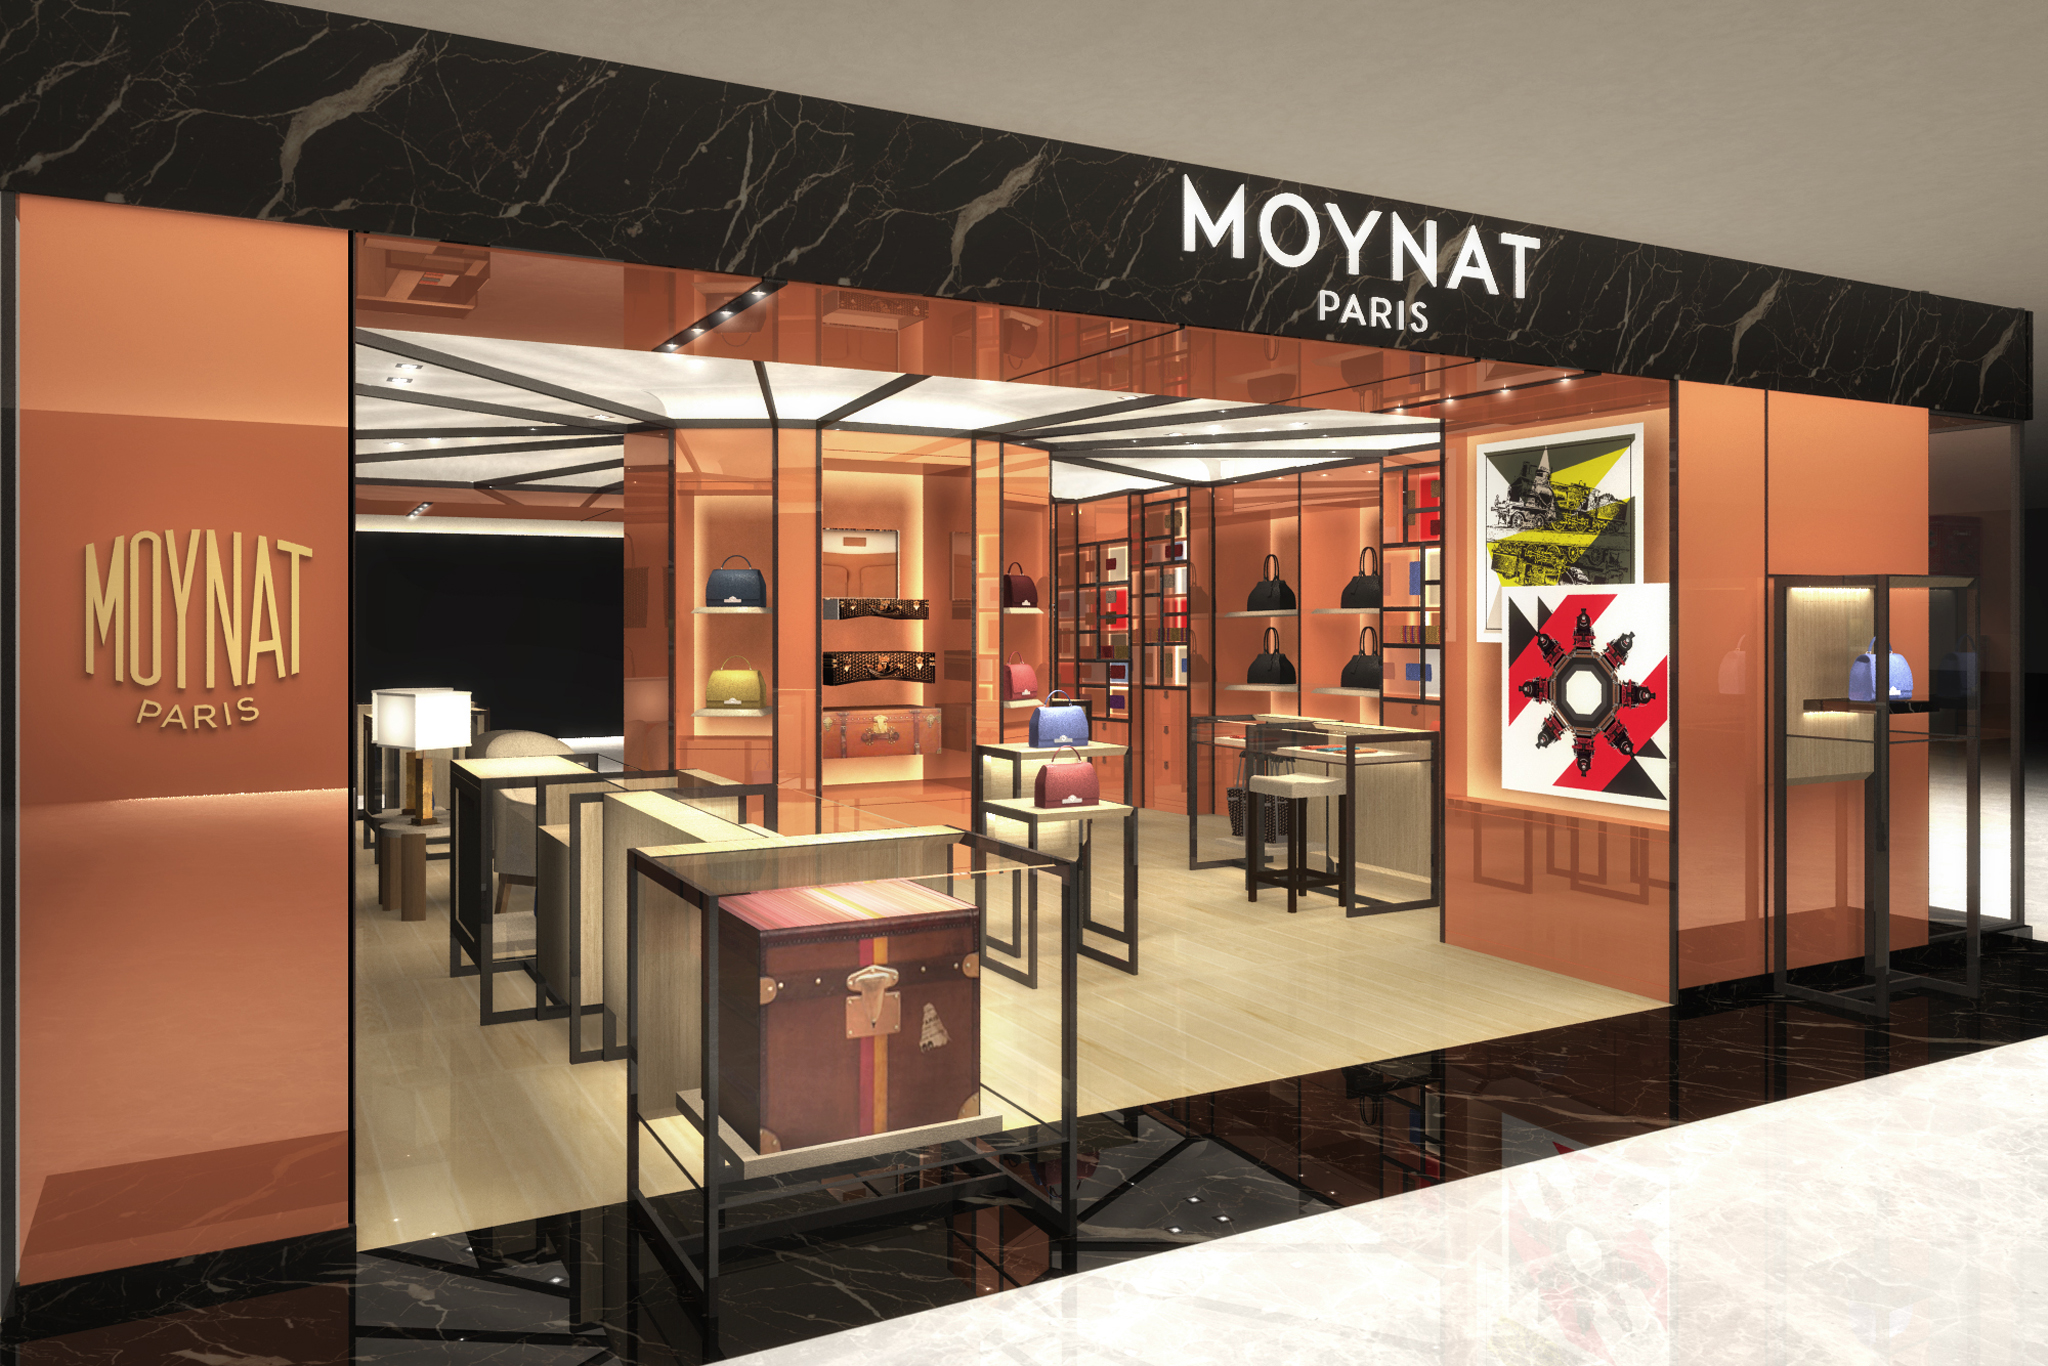 A rendering of the Moynat store in Tokyo